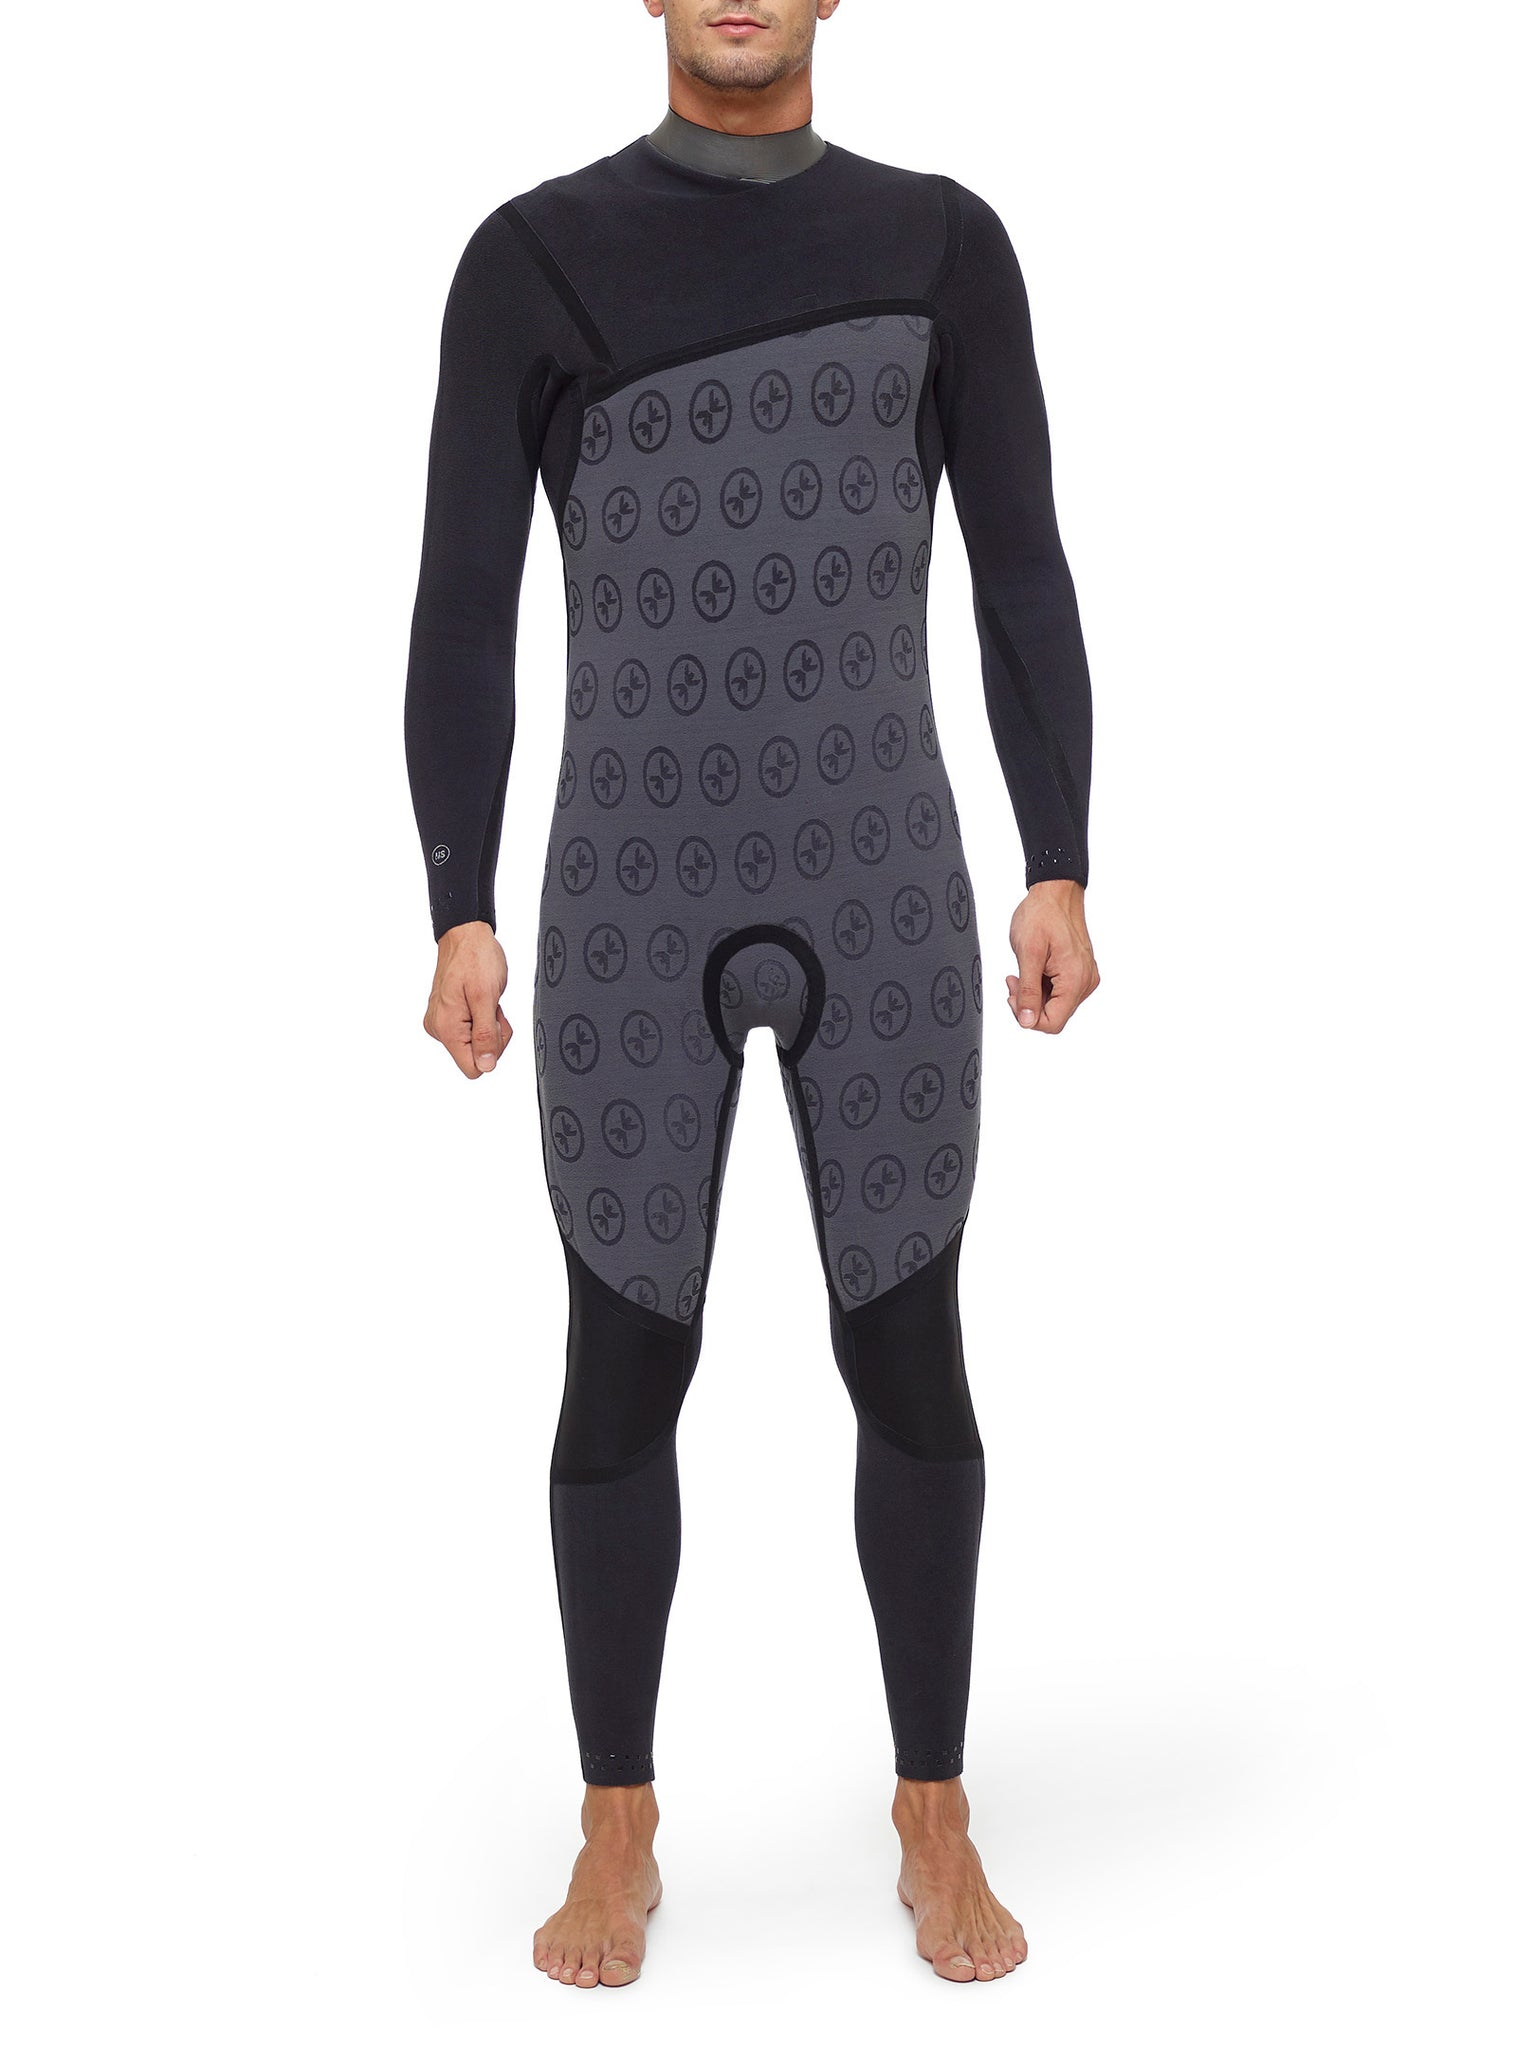 Wetsuit Man Competition 4/3 Chest Zip Black